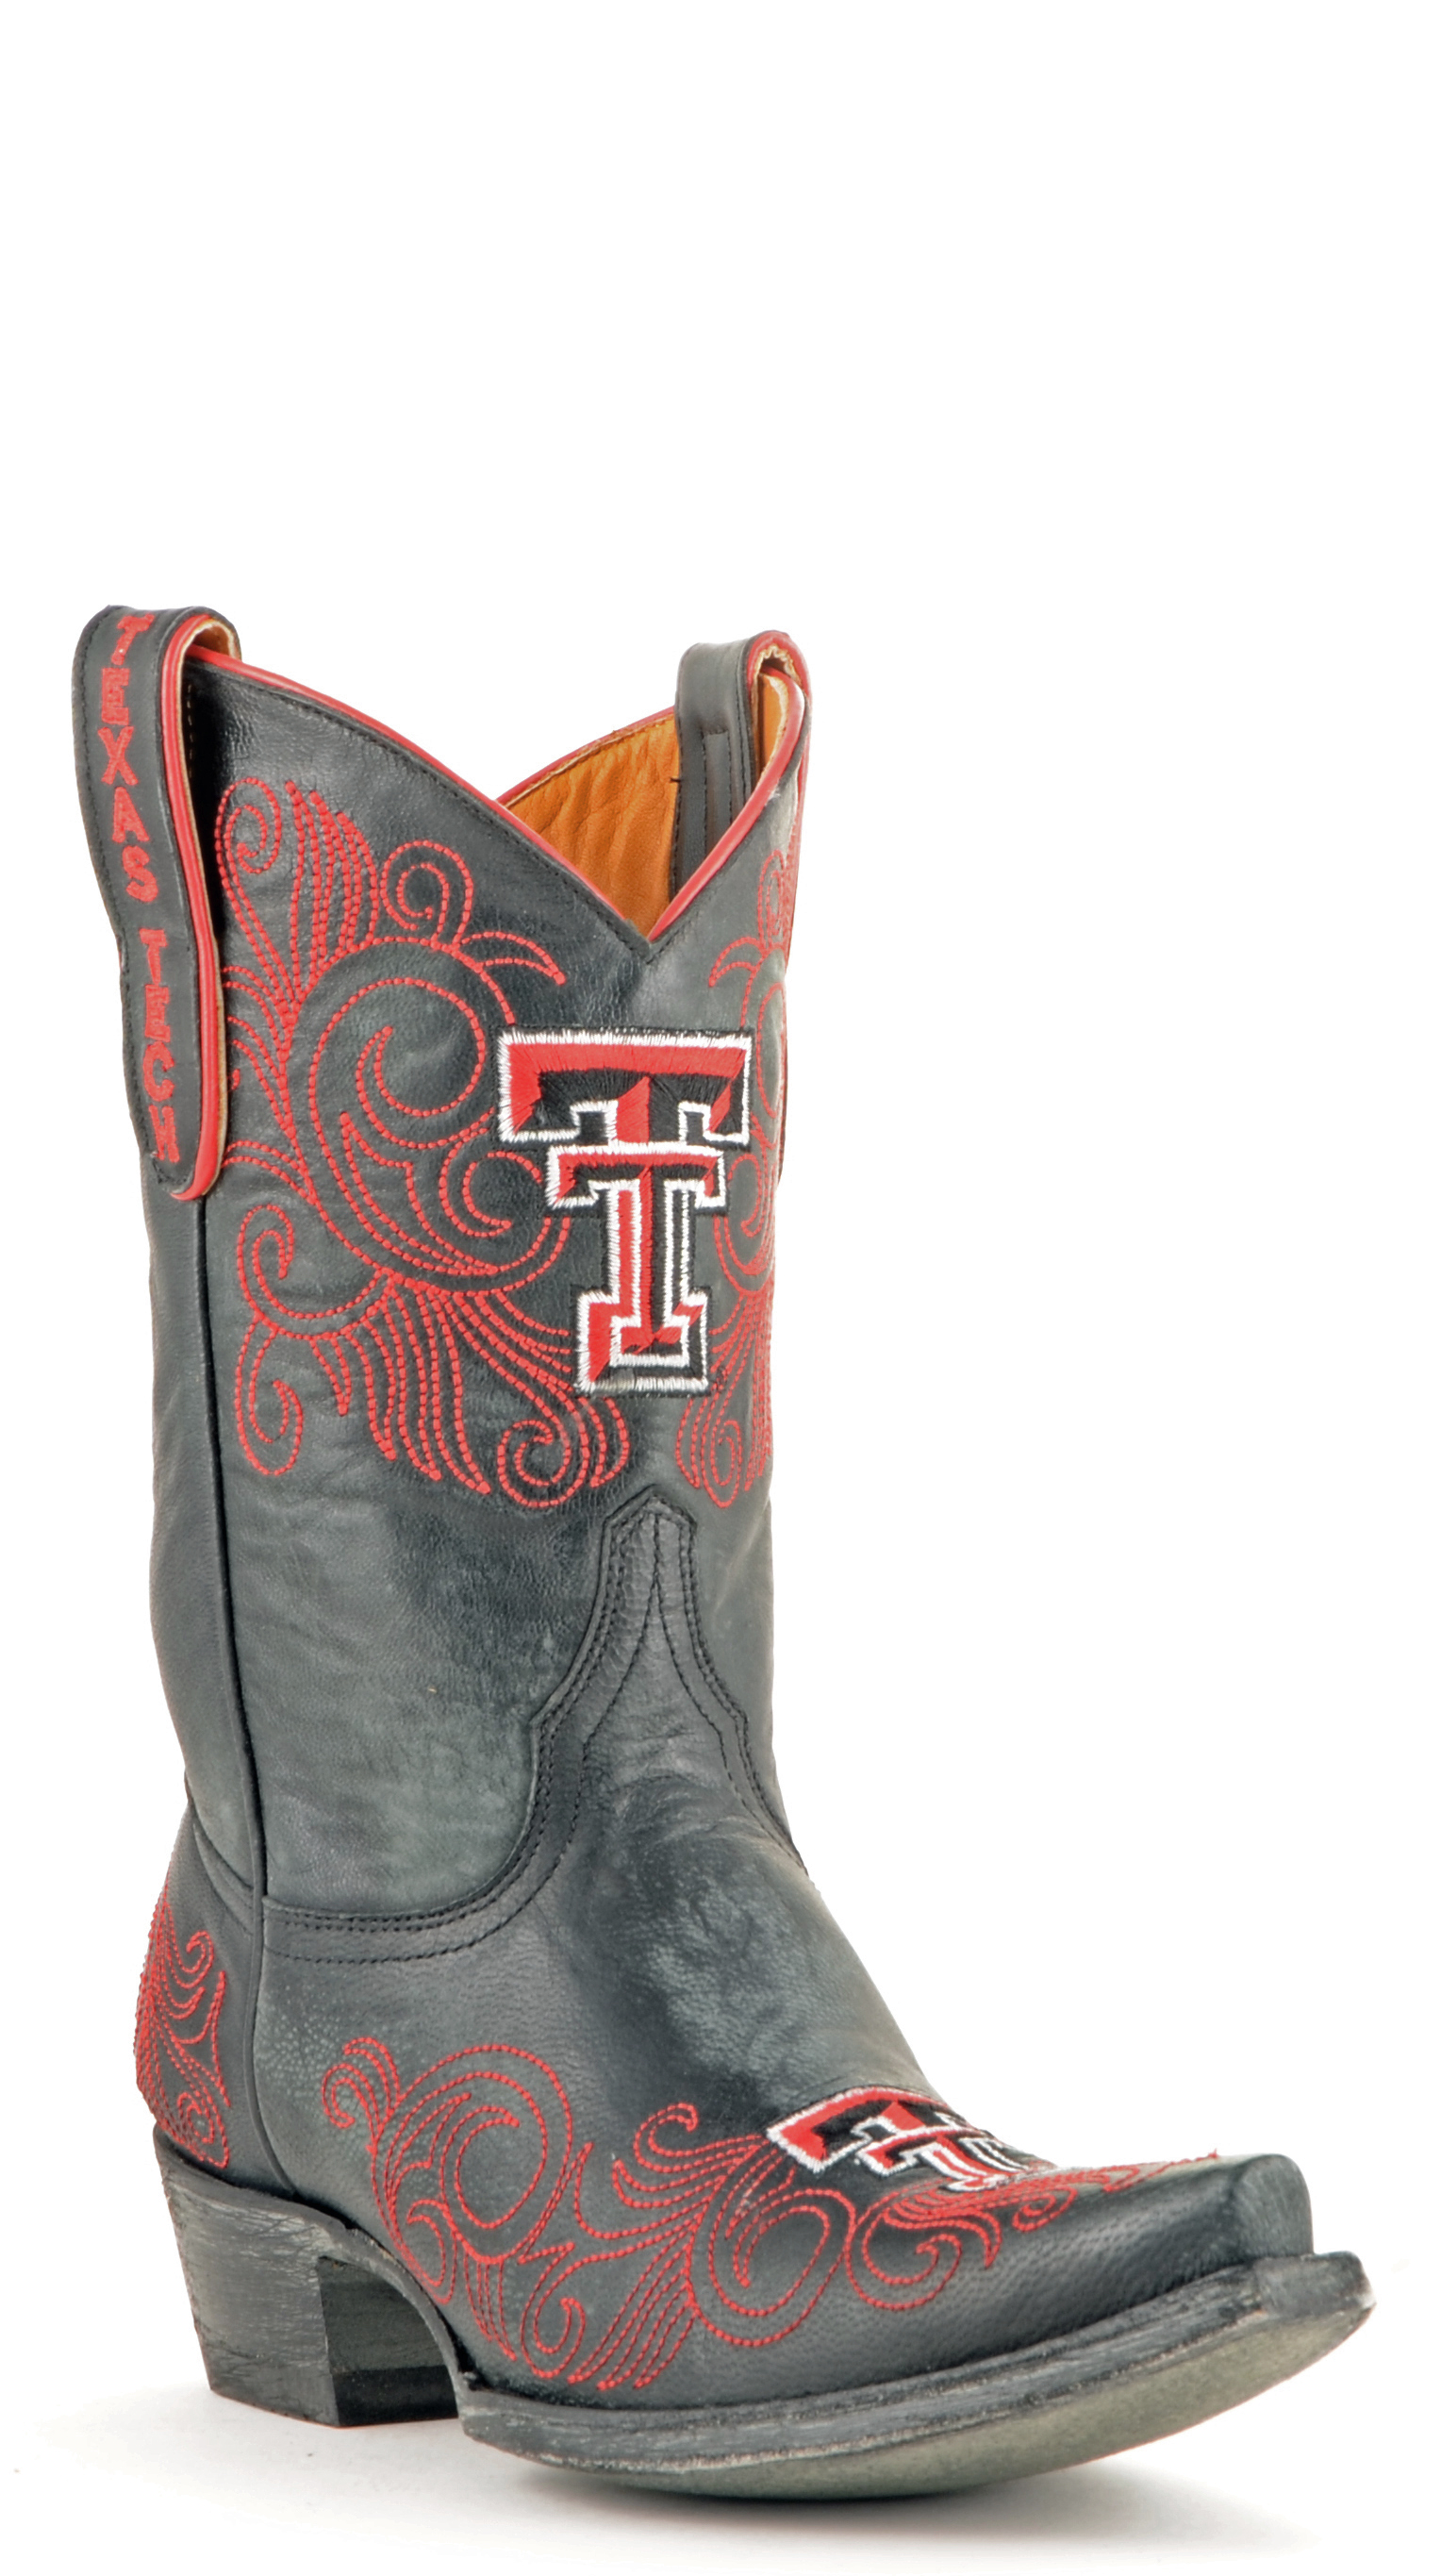 """Gameday Boots Women's 10"""" Short Leather Texas Tech Cowboy Boots 3626 New by GameDay Boots"""